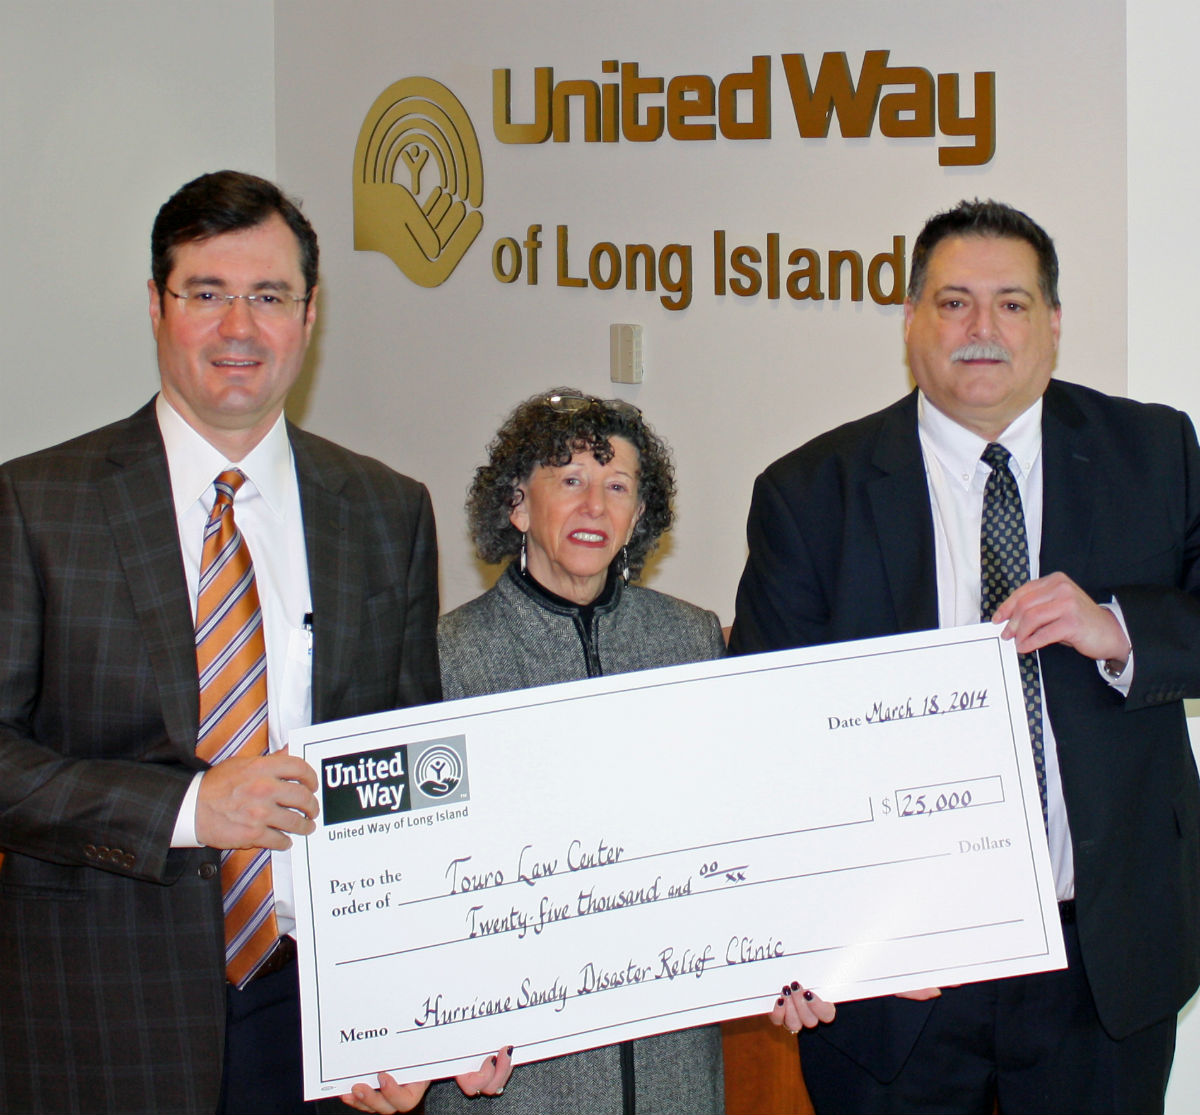 From left to right: John Corrado, President, Suffolk Transportation Service, Inc. & Past Chair, United Way of Long Island Board of Directors; Linda Howard Weissman, Touro Law Center Asst. Dean for Institutional Advancement; and Thomas Maligno, Touro Law Center Director of Public Interest.